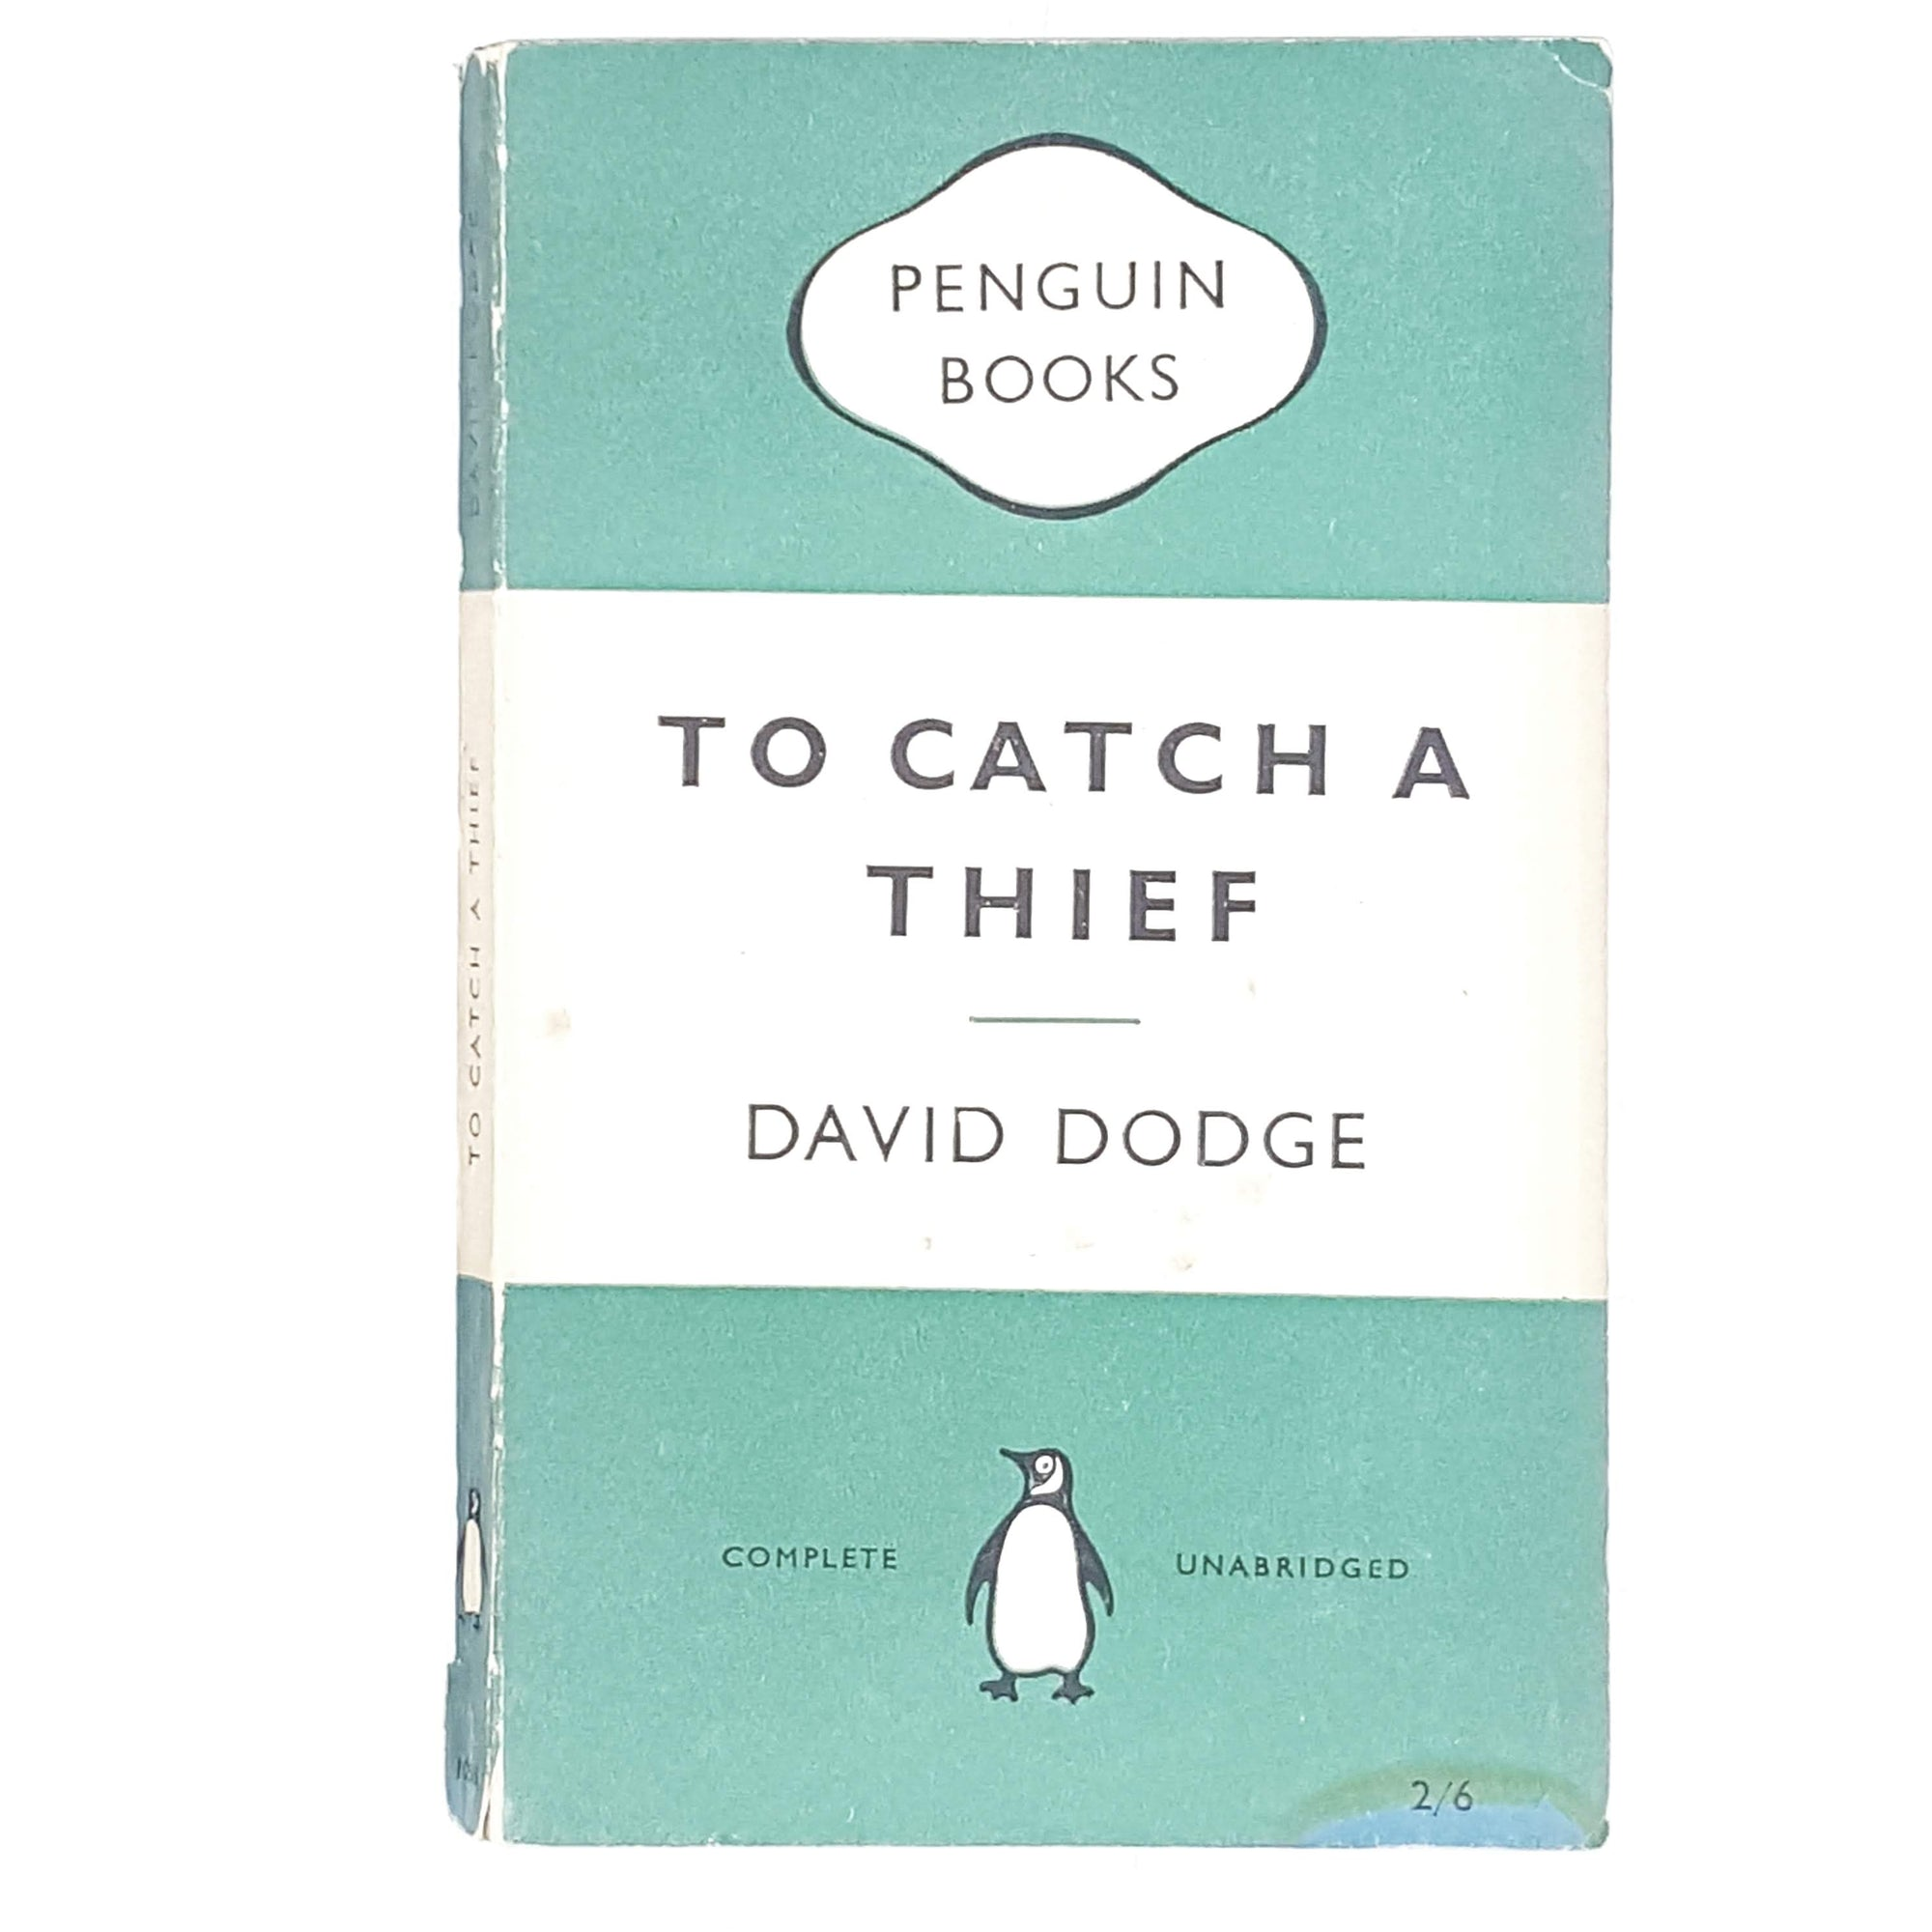 First Edition Penguin To Catch a Thief by David Dodge 1955